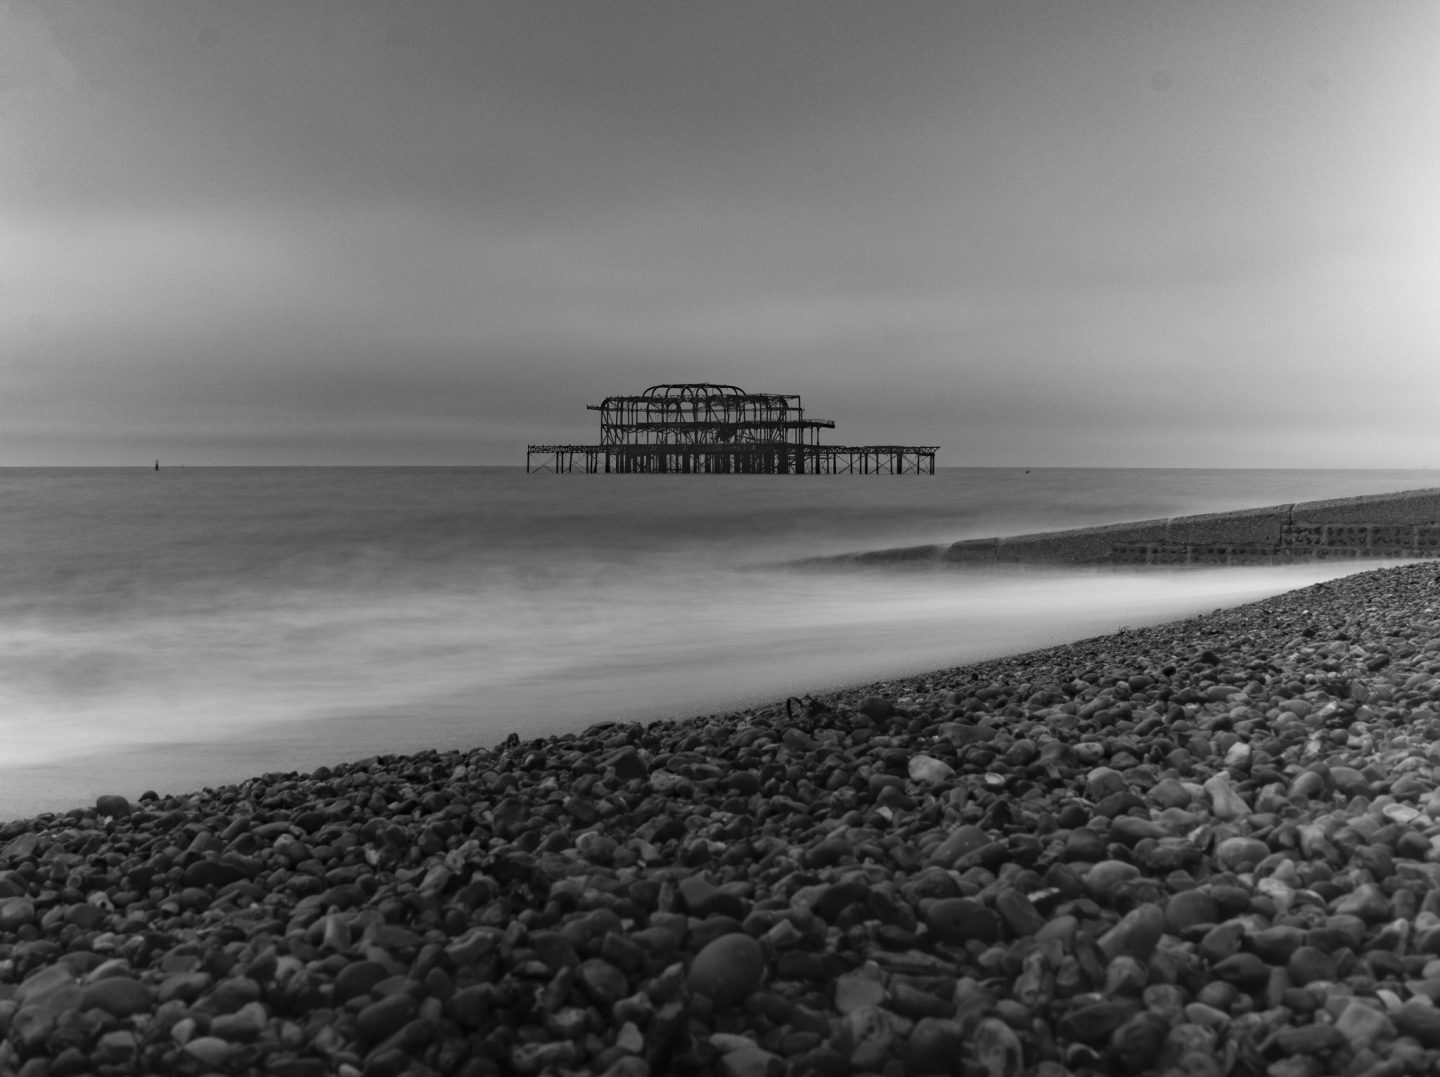 West Pier, Brighton's West Pier, West Pier Brighton, Brighton Beach, Brighton Sea Front, dadbloguk, uk dad blogger, uk dad blog, dadbloguk.com